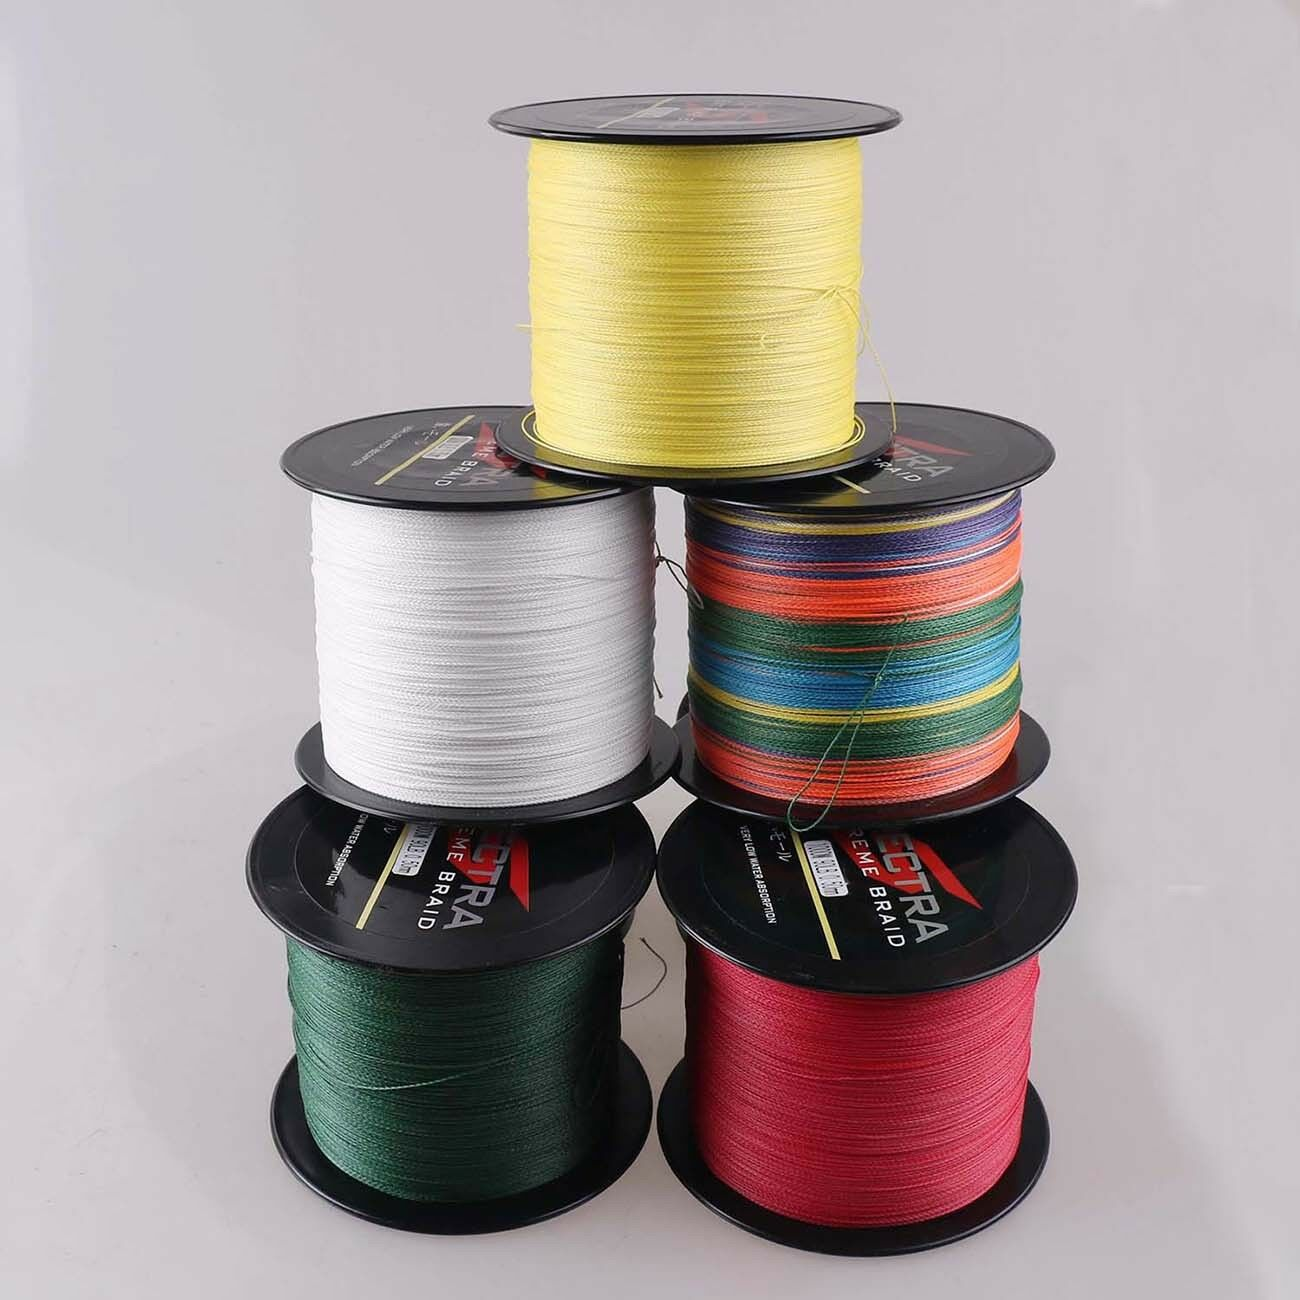 2000M Super Strong Dyneema Spectr Extreme PE Braided Sea Fishing Line